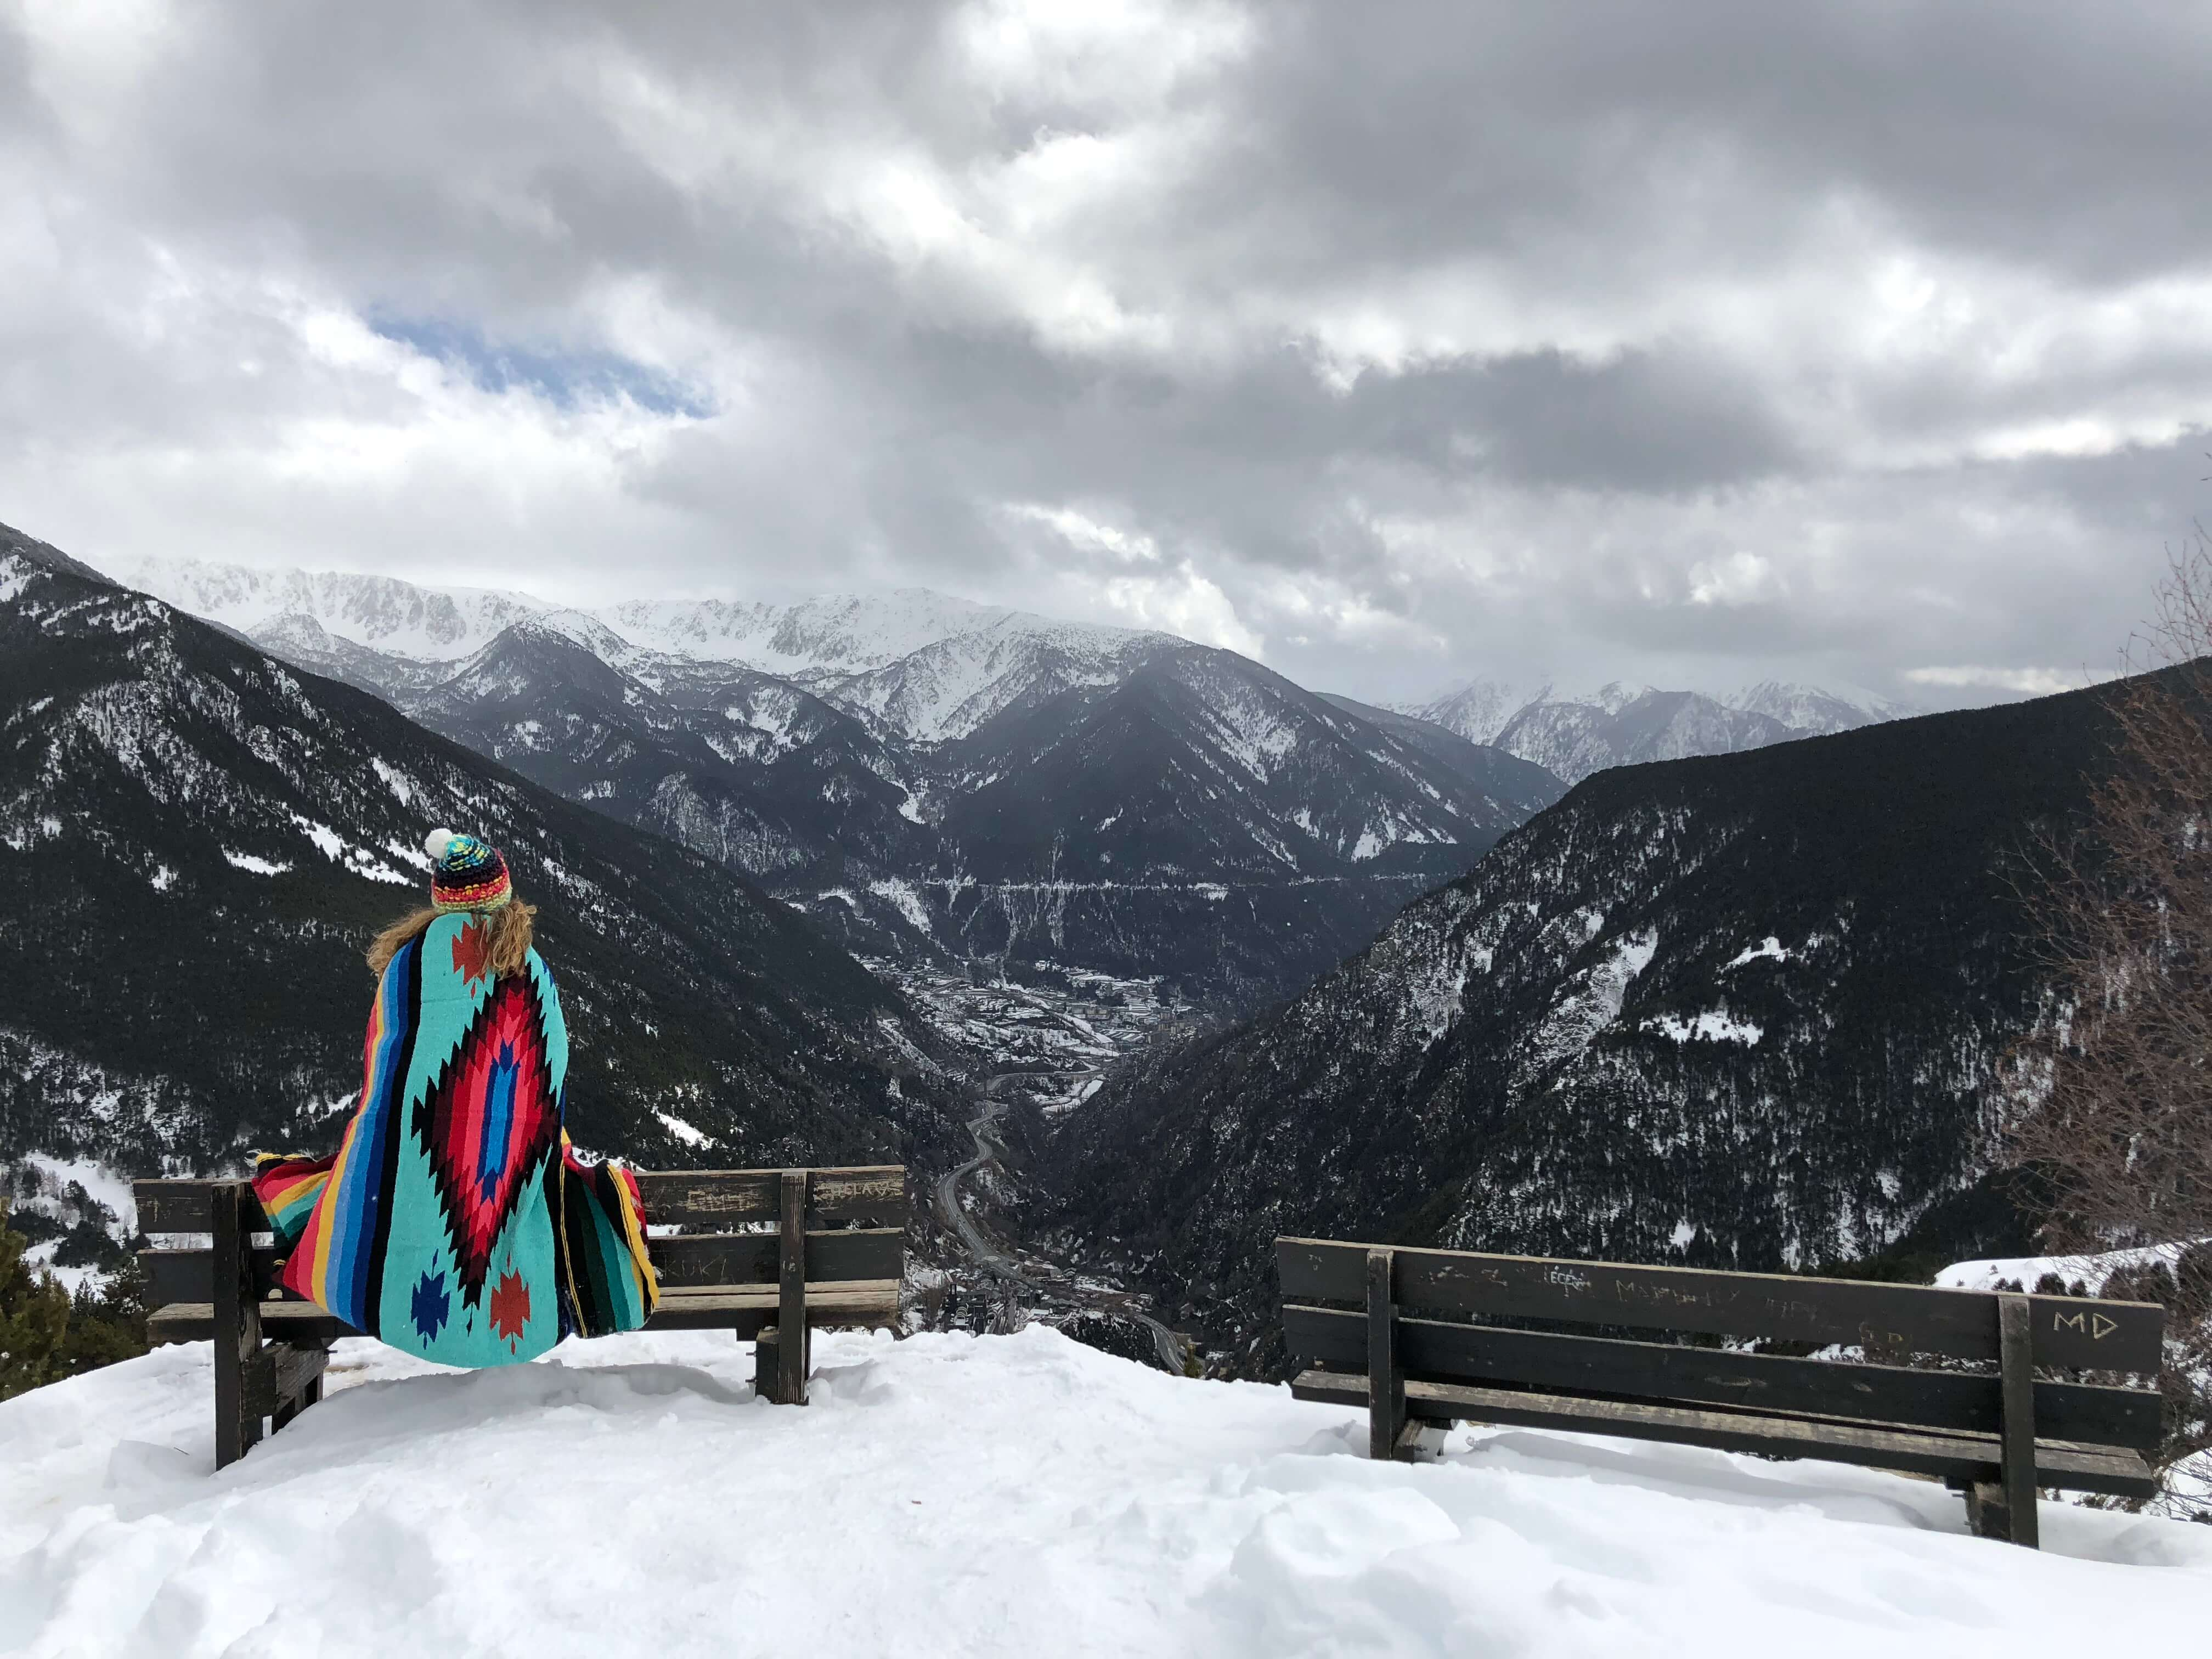 Scott's Cheap Flights member Drew C. in snow-covered mountains